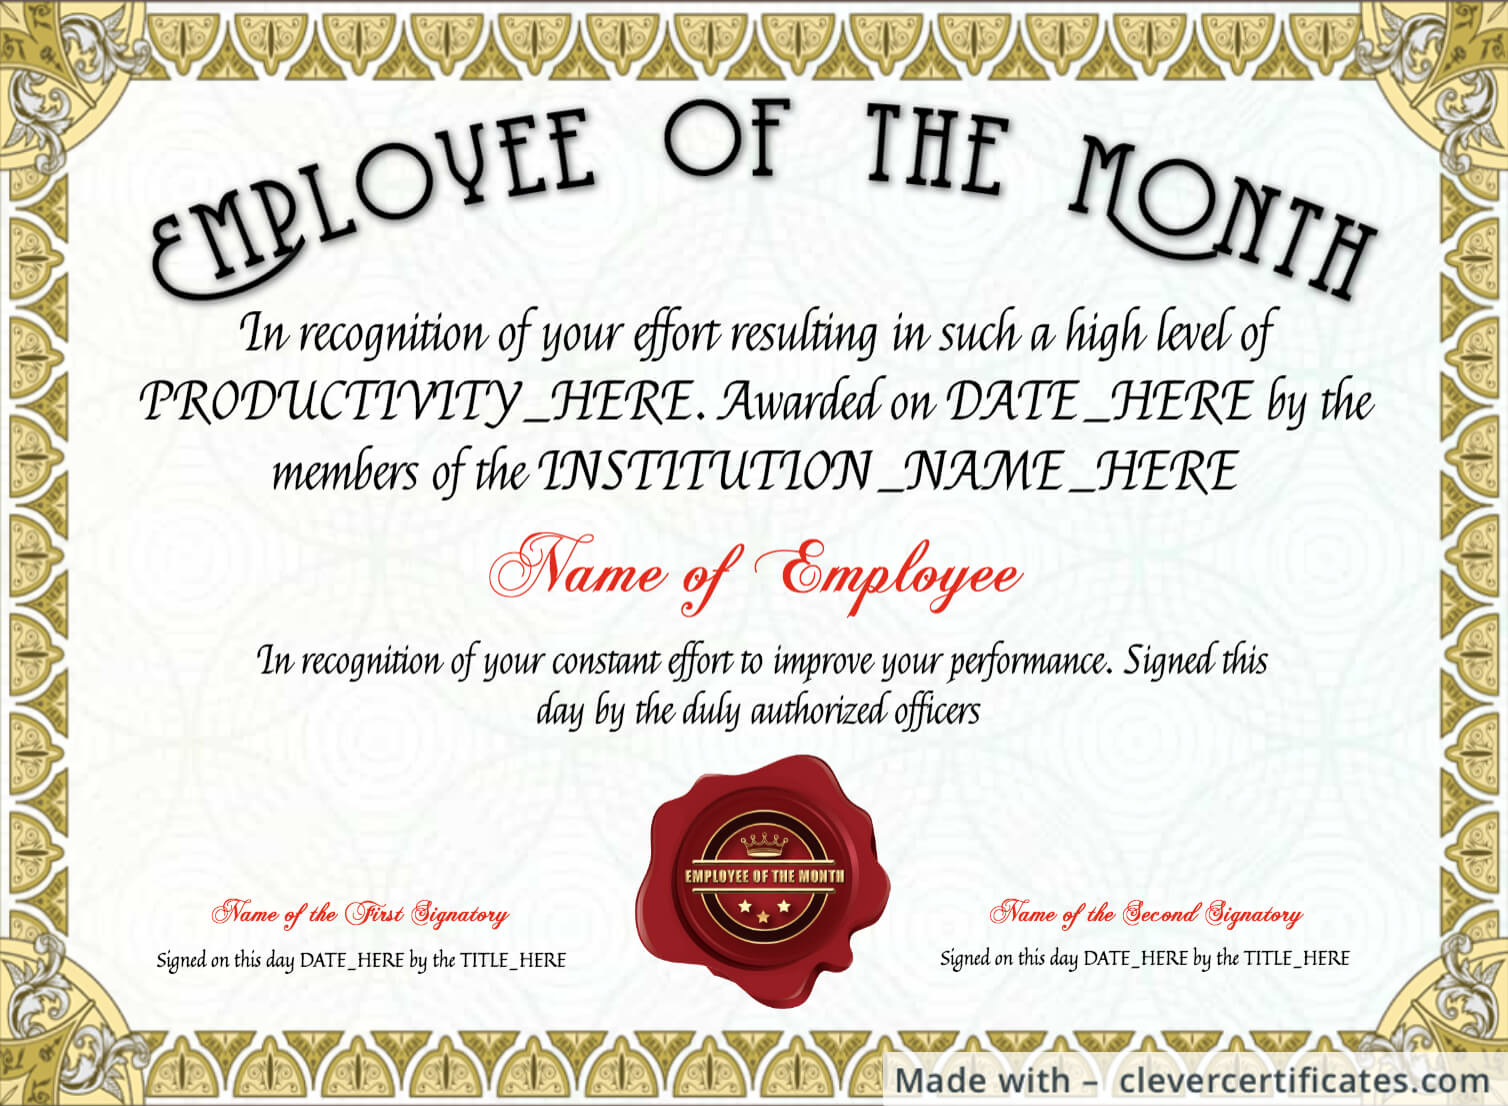 Free Employee Of The Month Certificate Template At throughout Employee Of The Month Certificate Template With Picture